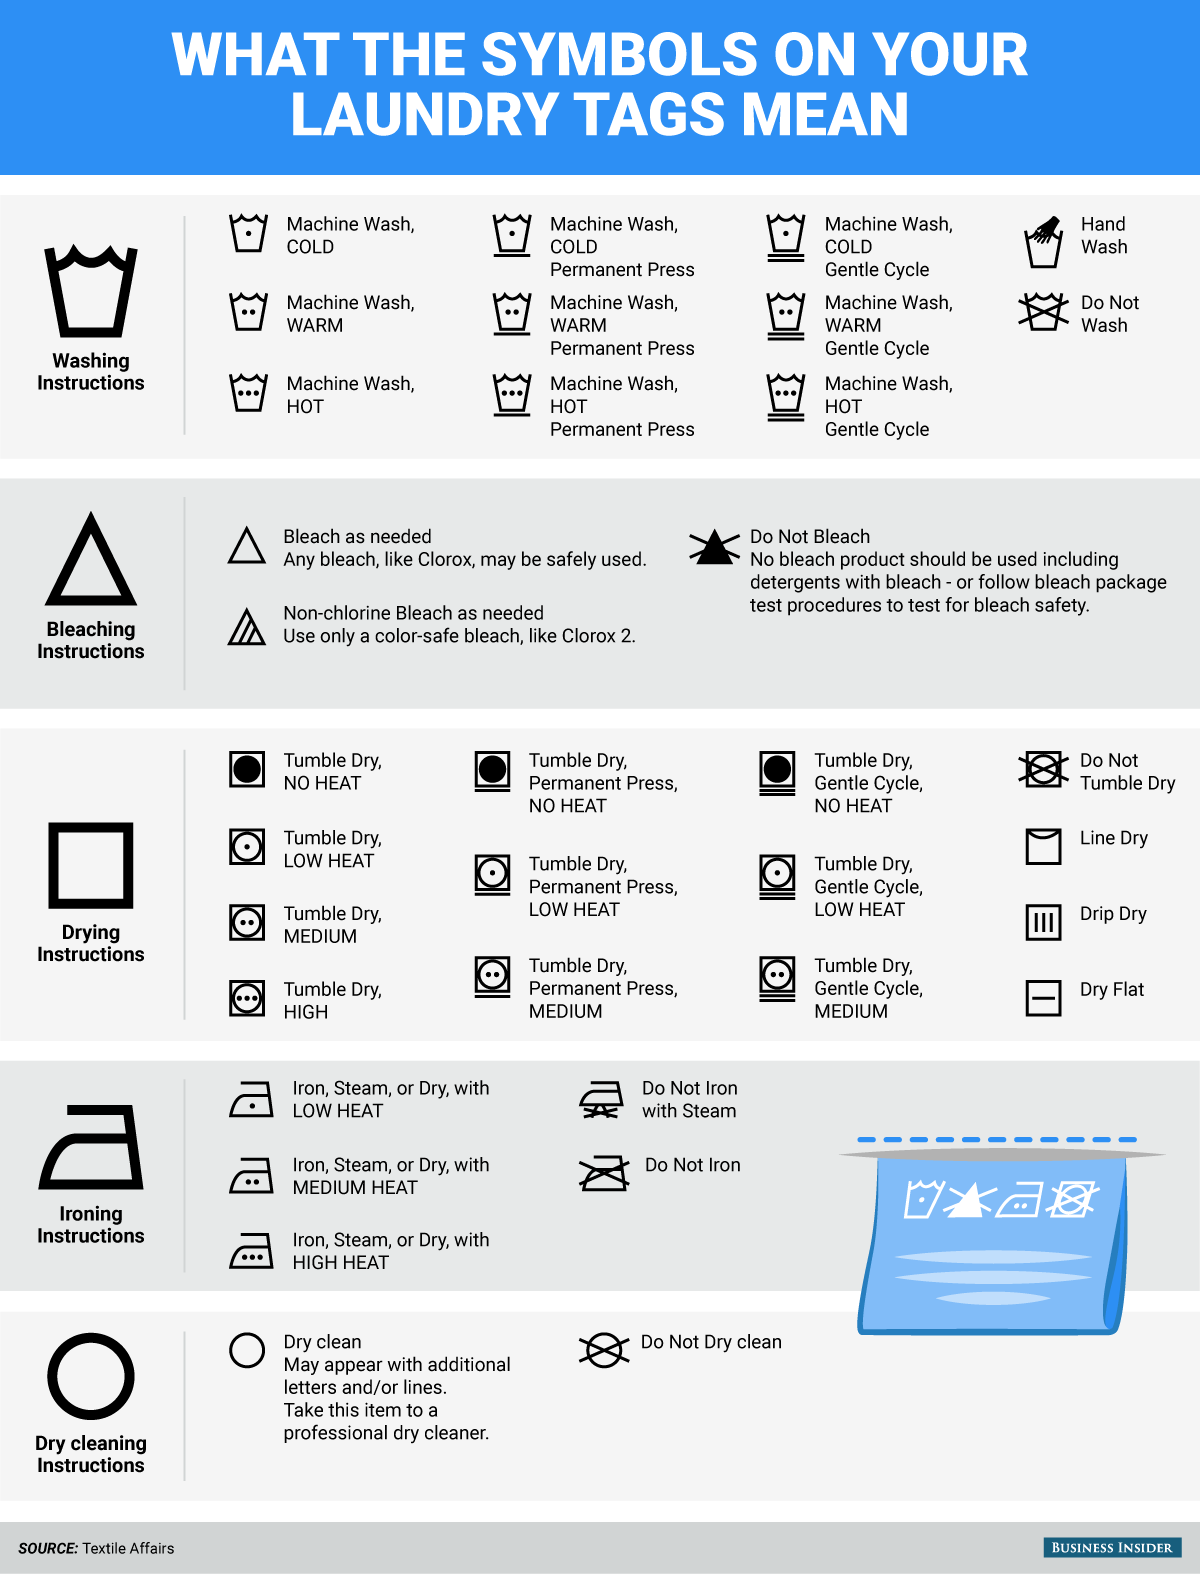 Heres What Those Mysterious Symbols On Your Laundry Tags Really